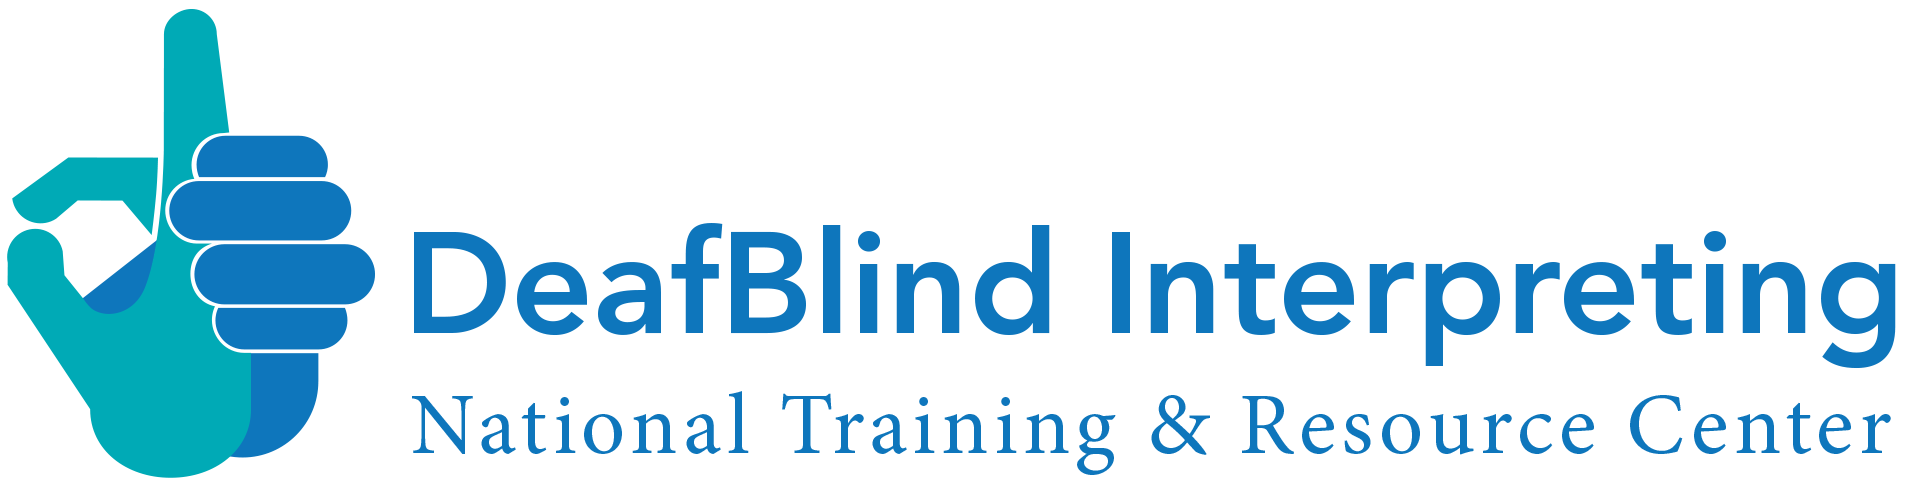 DeafBlind Interpreting National Training and Resource Center